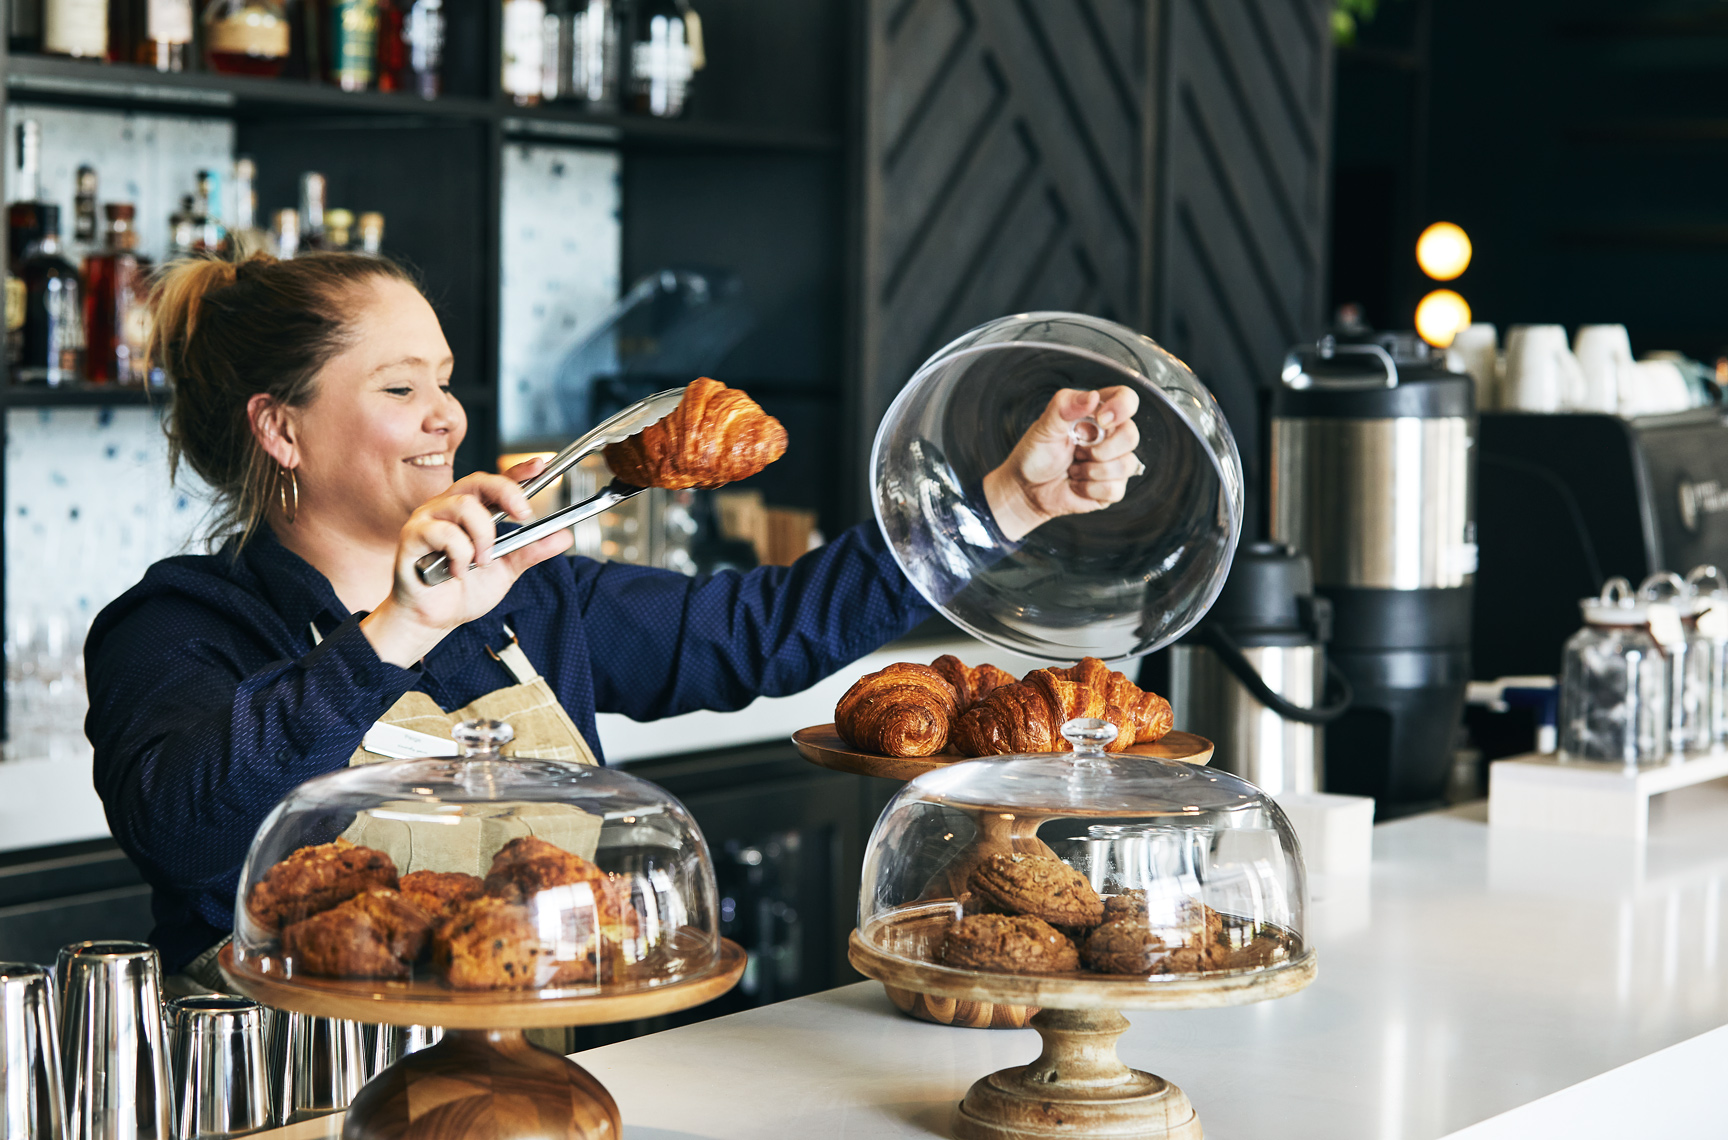 woman holding croissant at coffee bar